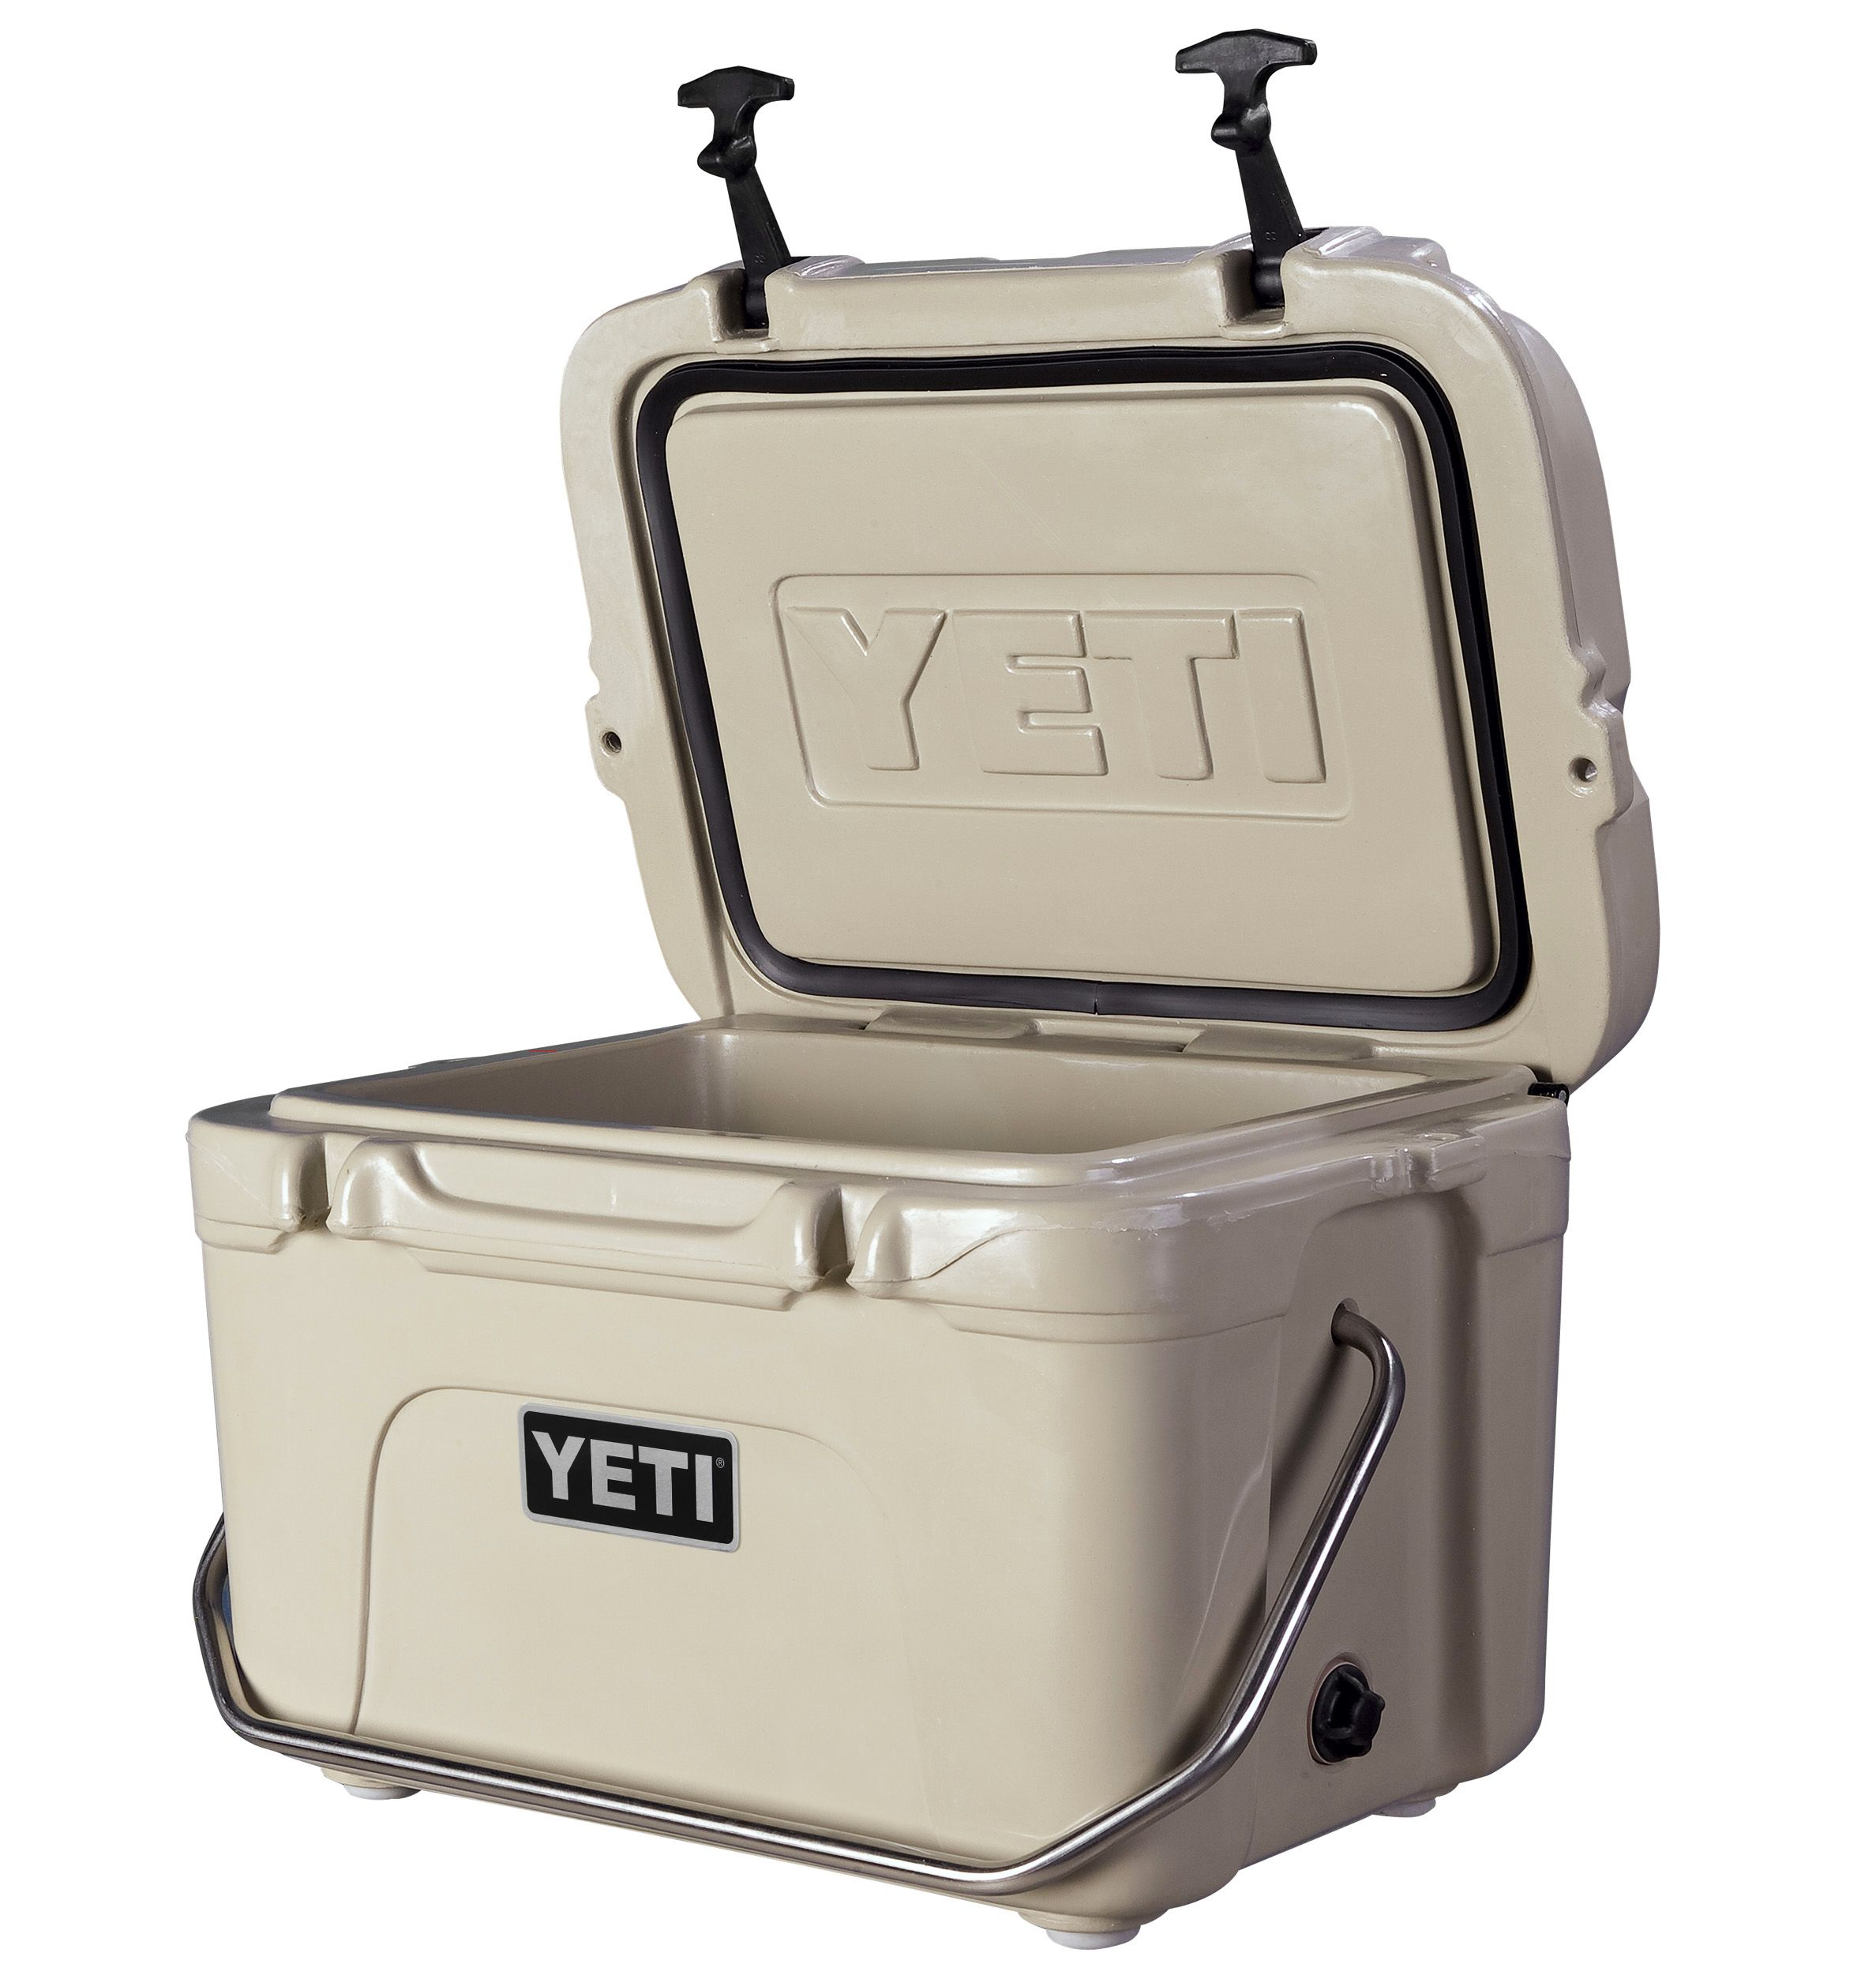 Yeti Coolers Premium Ice Chests Apparel And Gear Yeti Cooler Yeti Coolers Yeti